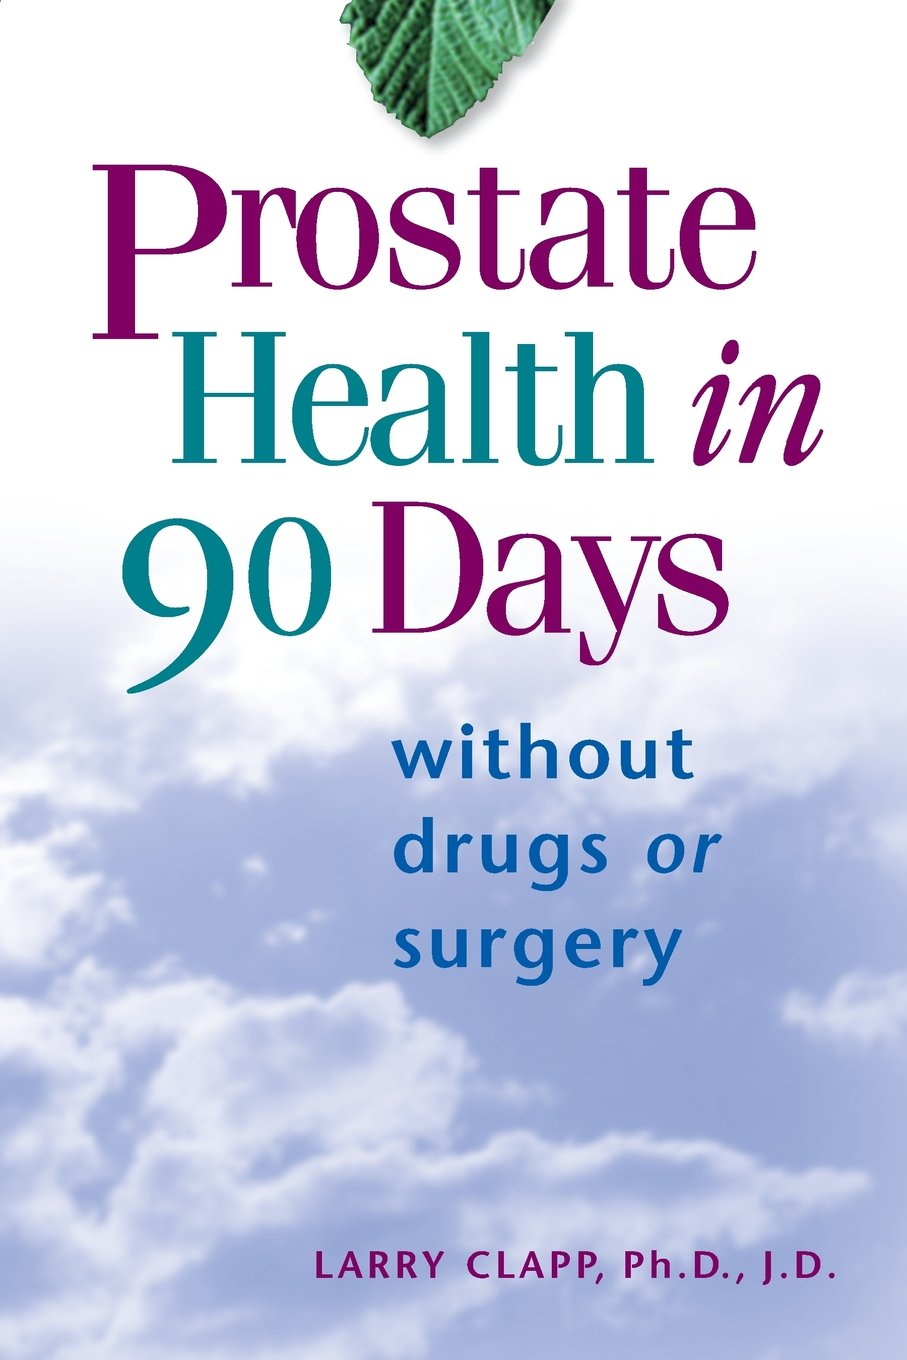 Prostate Health in 90 Days - by Larry Clapp PhDFrom the Author:My message is simple: If you have been diagnosed with problems with the prostate, including cancer, you don't have to let the doctors give you radiation or surgically remove your prostate.There is an alternative, one that will not only eliminate your disease but also increase your general level of health. What you'll find in my book is the plan I created to heal myself naturally from prostate cancer, and attain the outstanding levels of health and vitality I enjoy today.